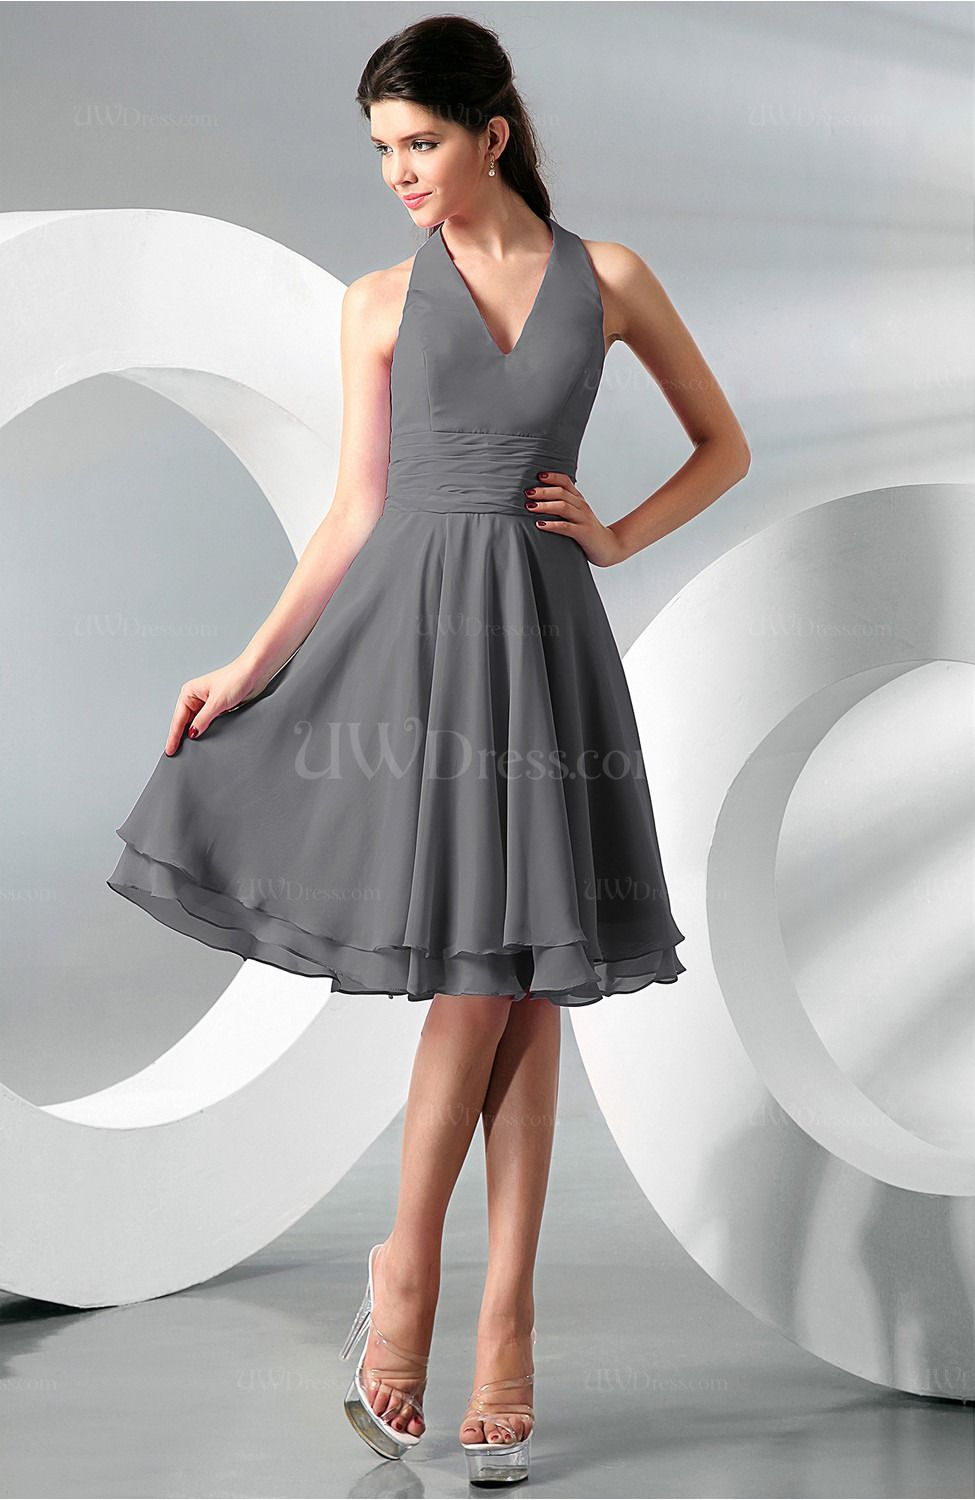 Bridesmaid dresses short gray google search styles i love bridesmaid dresses short gray google search ombrellifo Images